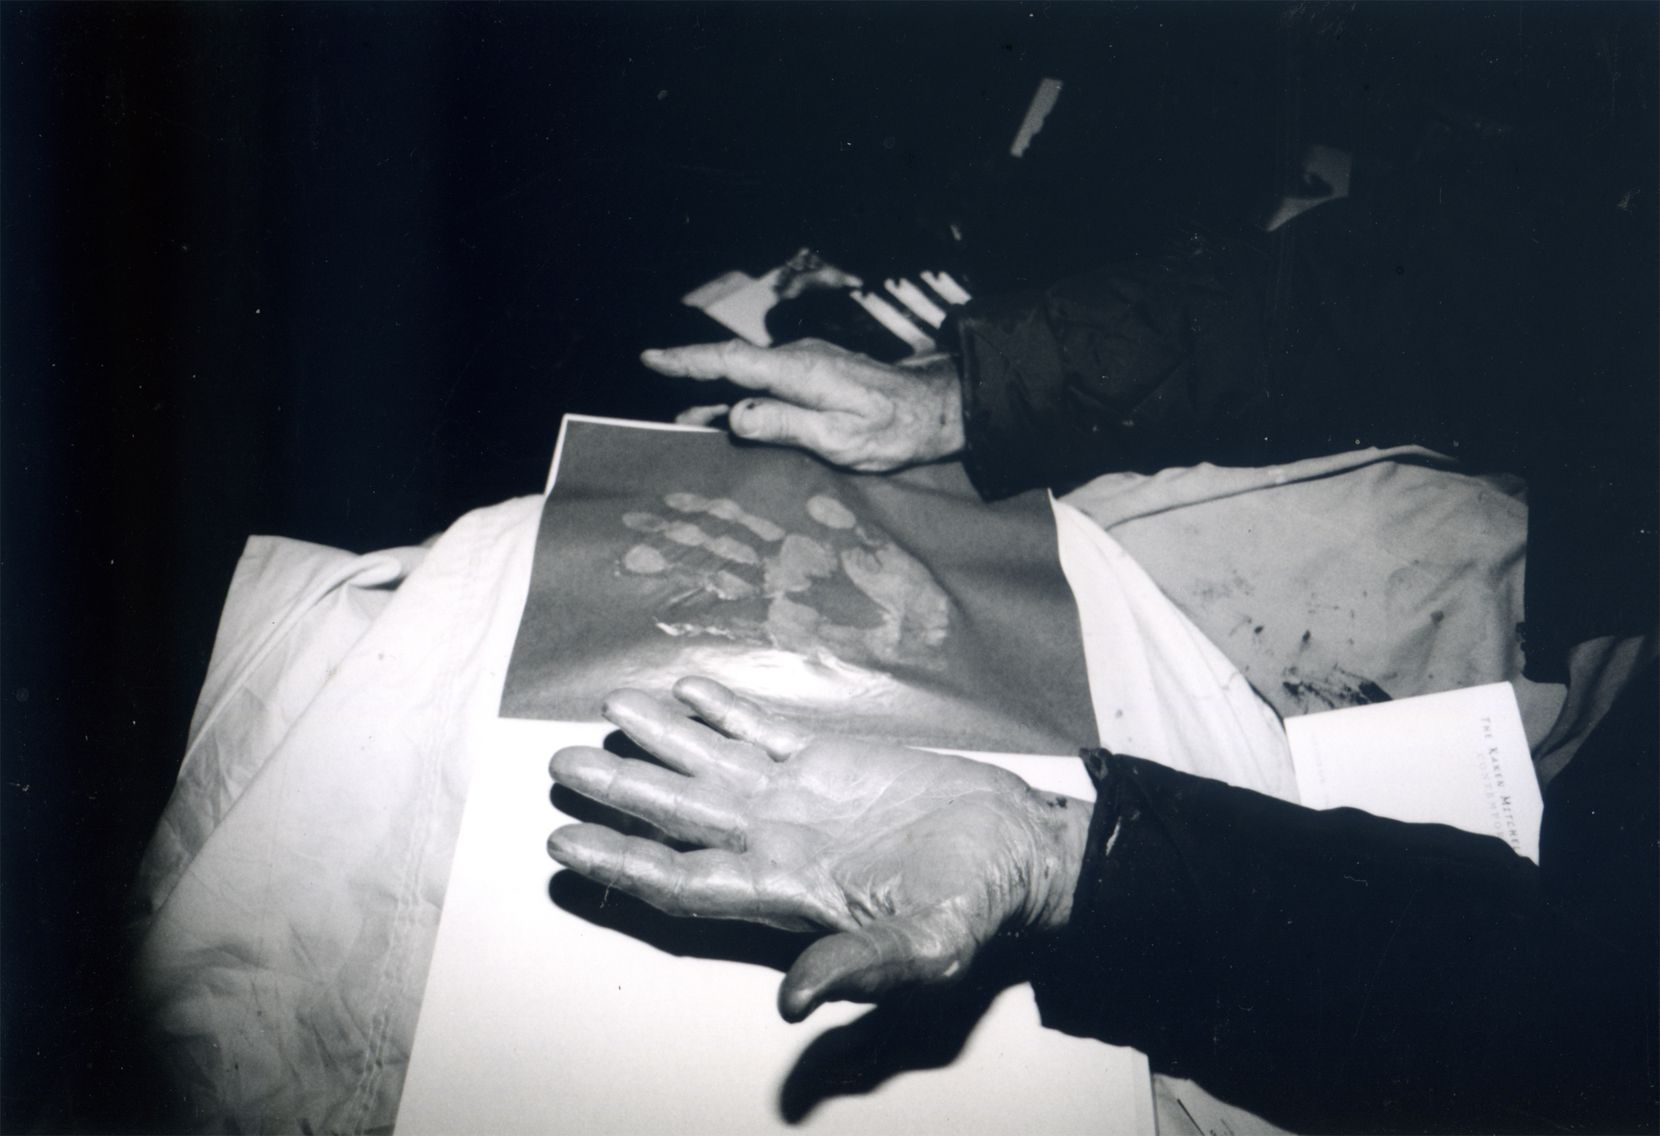 Peter Beard's hand and handprint, seen during the exhibit of his works at the Boyd Gallery in Dallas in 2000.